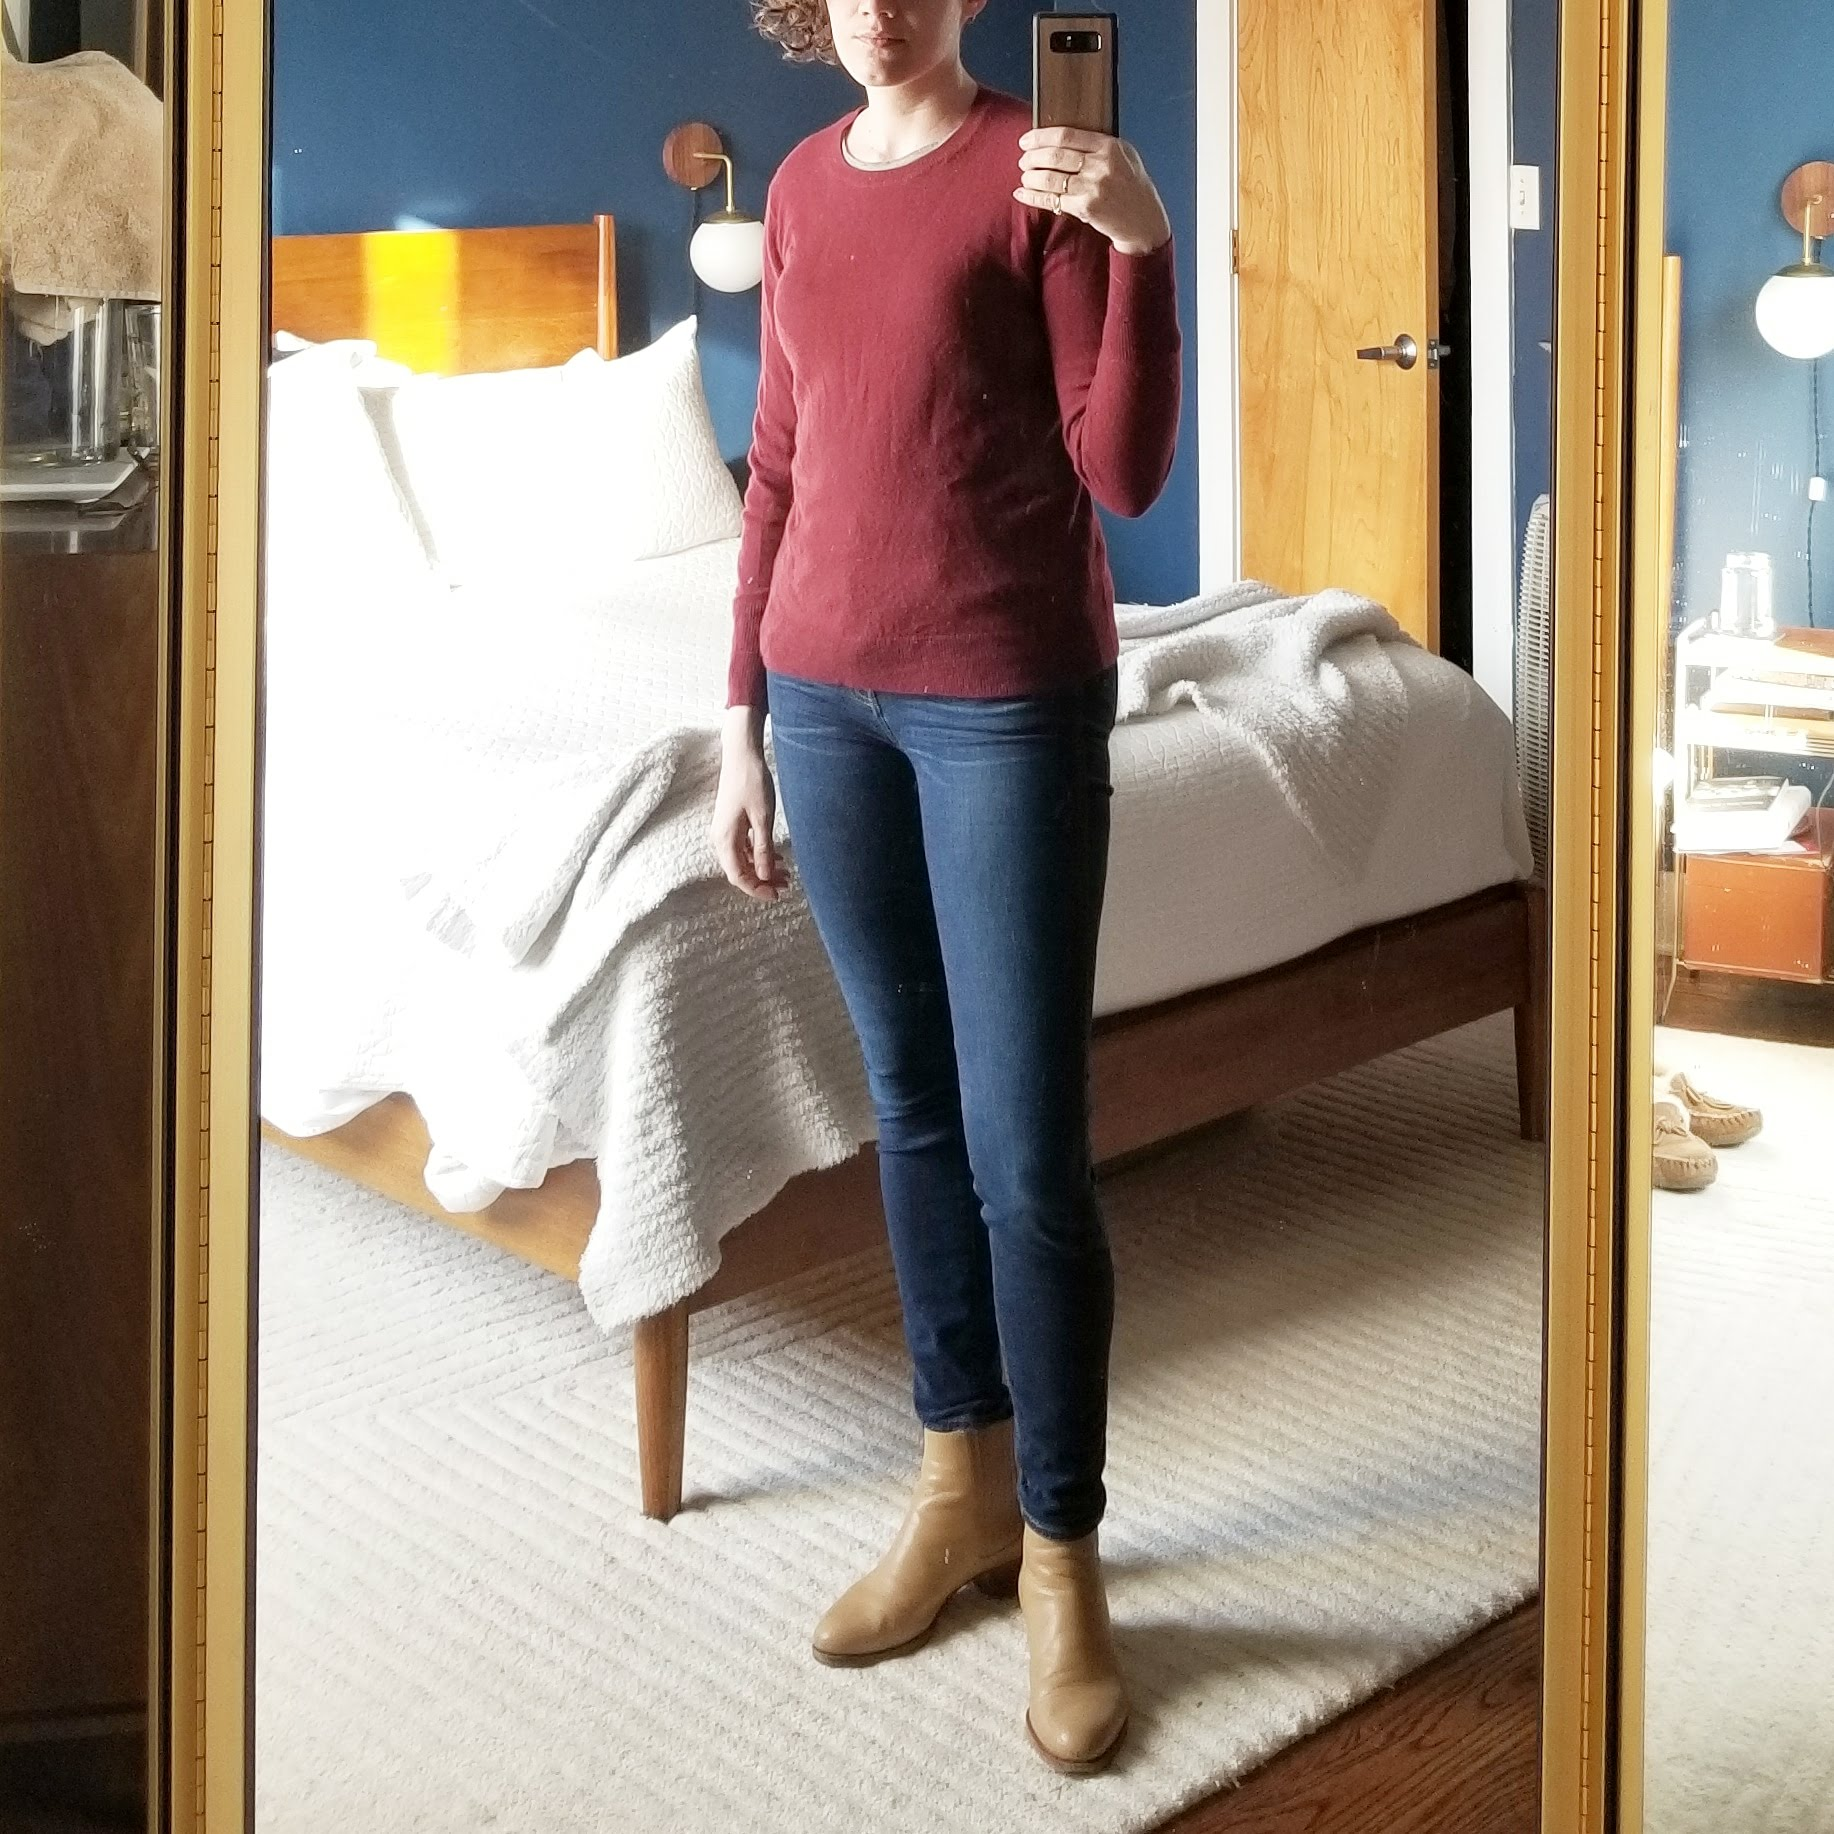 Saturday - March 10, 2018Super basic, but I had to roll out of bed and immediately go pickup and install a banner for work this morning. Everlane sweater and skinny jeans can't go wrong. The pink sweater came out again as a second layer later in the day.